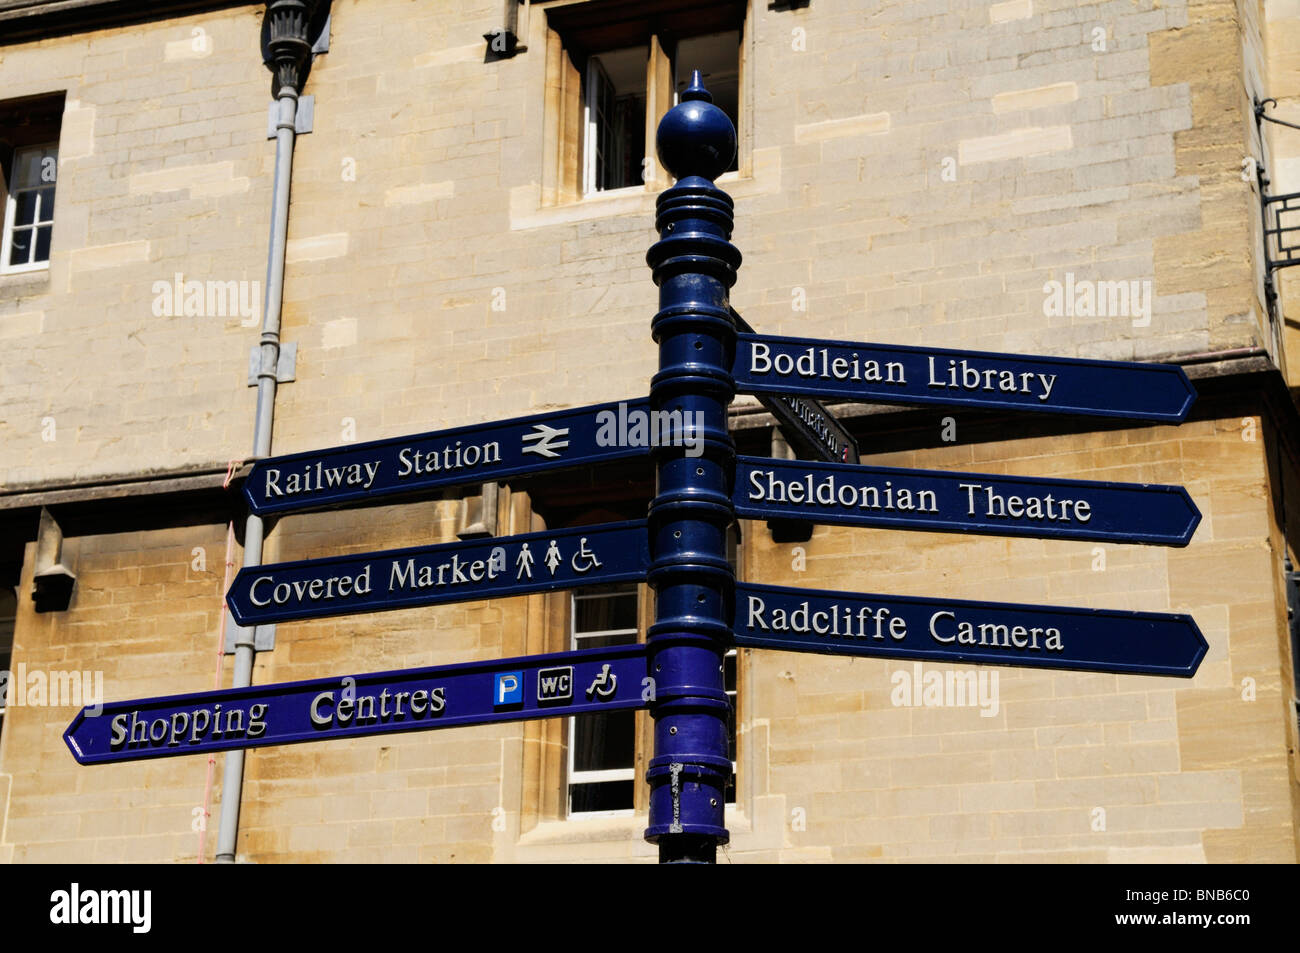 Signpost to Tourist attractions in Oxford, England, UK - Stock Image